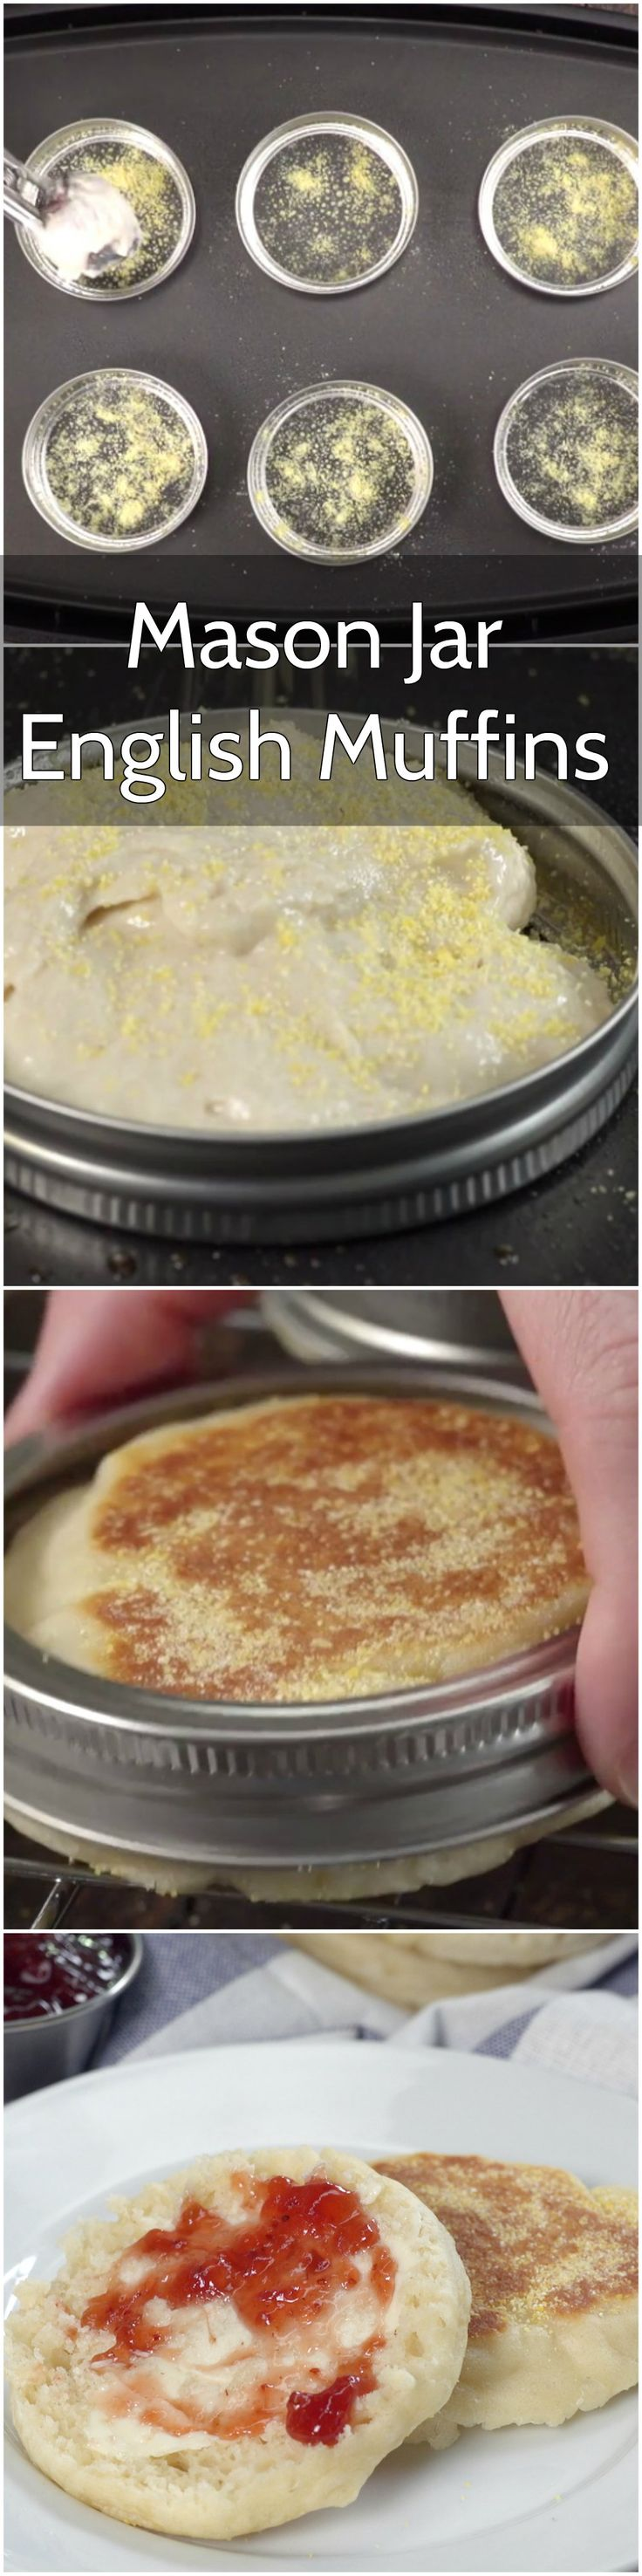 It's So Easy to make homemade English Muffins using Mason Jar Lids.